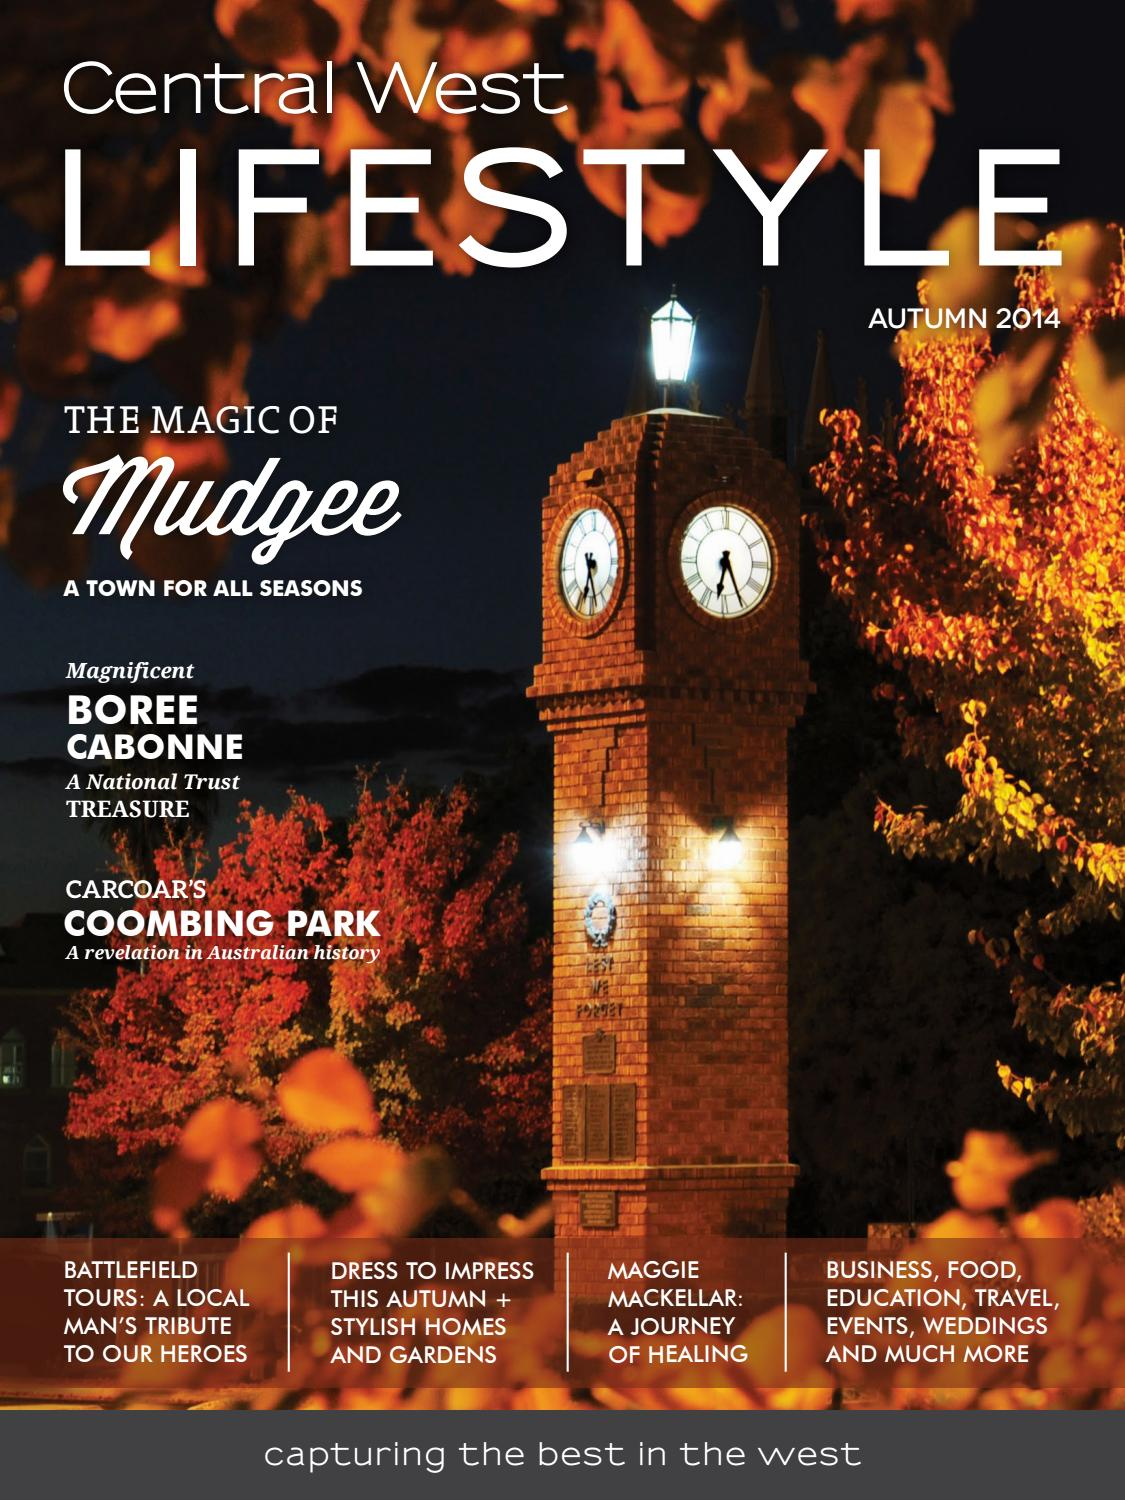 4 Central West Lifestyle Autumn 2013 By Byo Concert Small In Sand Magazine Issuu